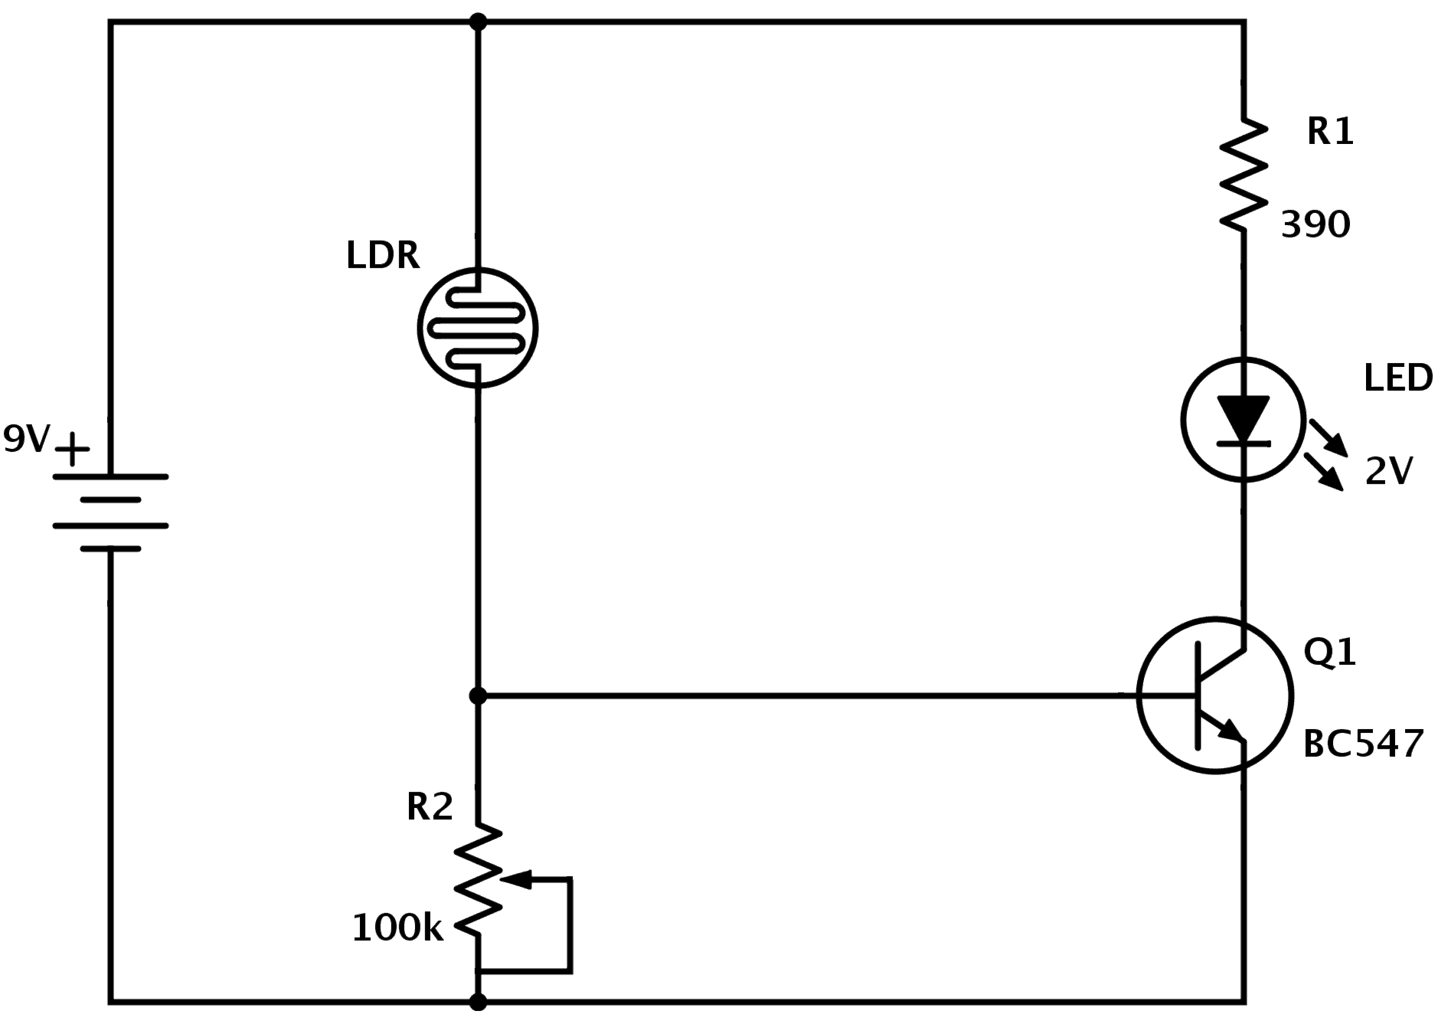 Ldr Circuit Diagram Build Electronic Circuits Live Well Timer Wiring